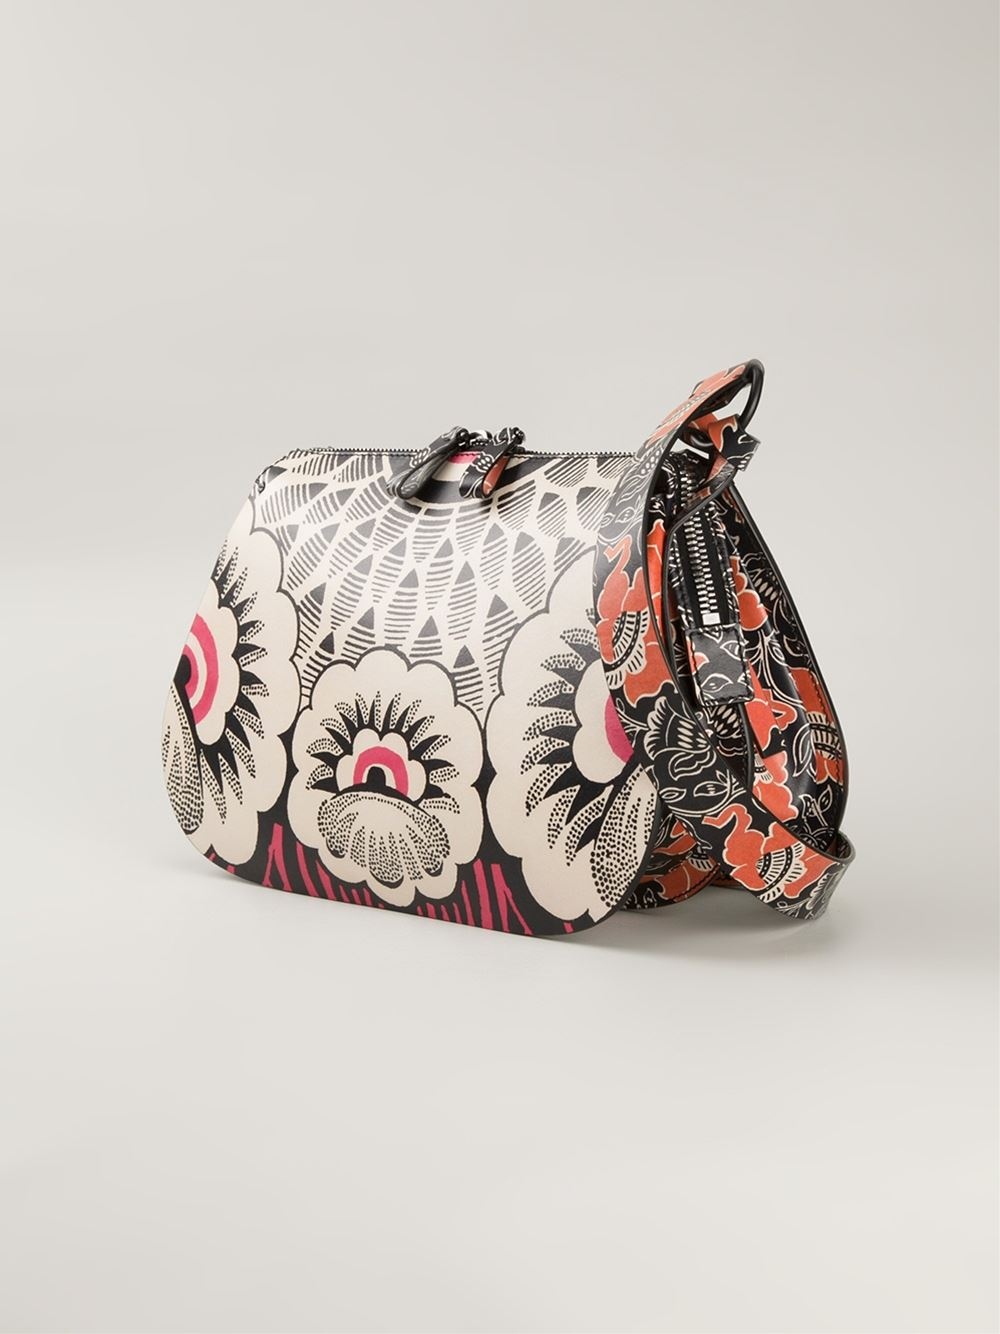 Lyst - Valentino Floral-Print Leather Shoulder Bag